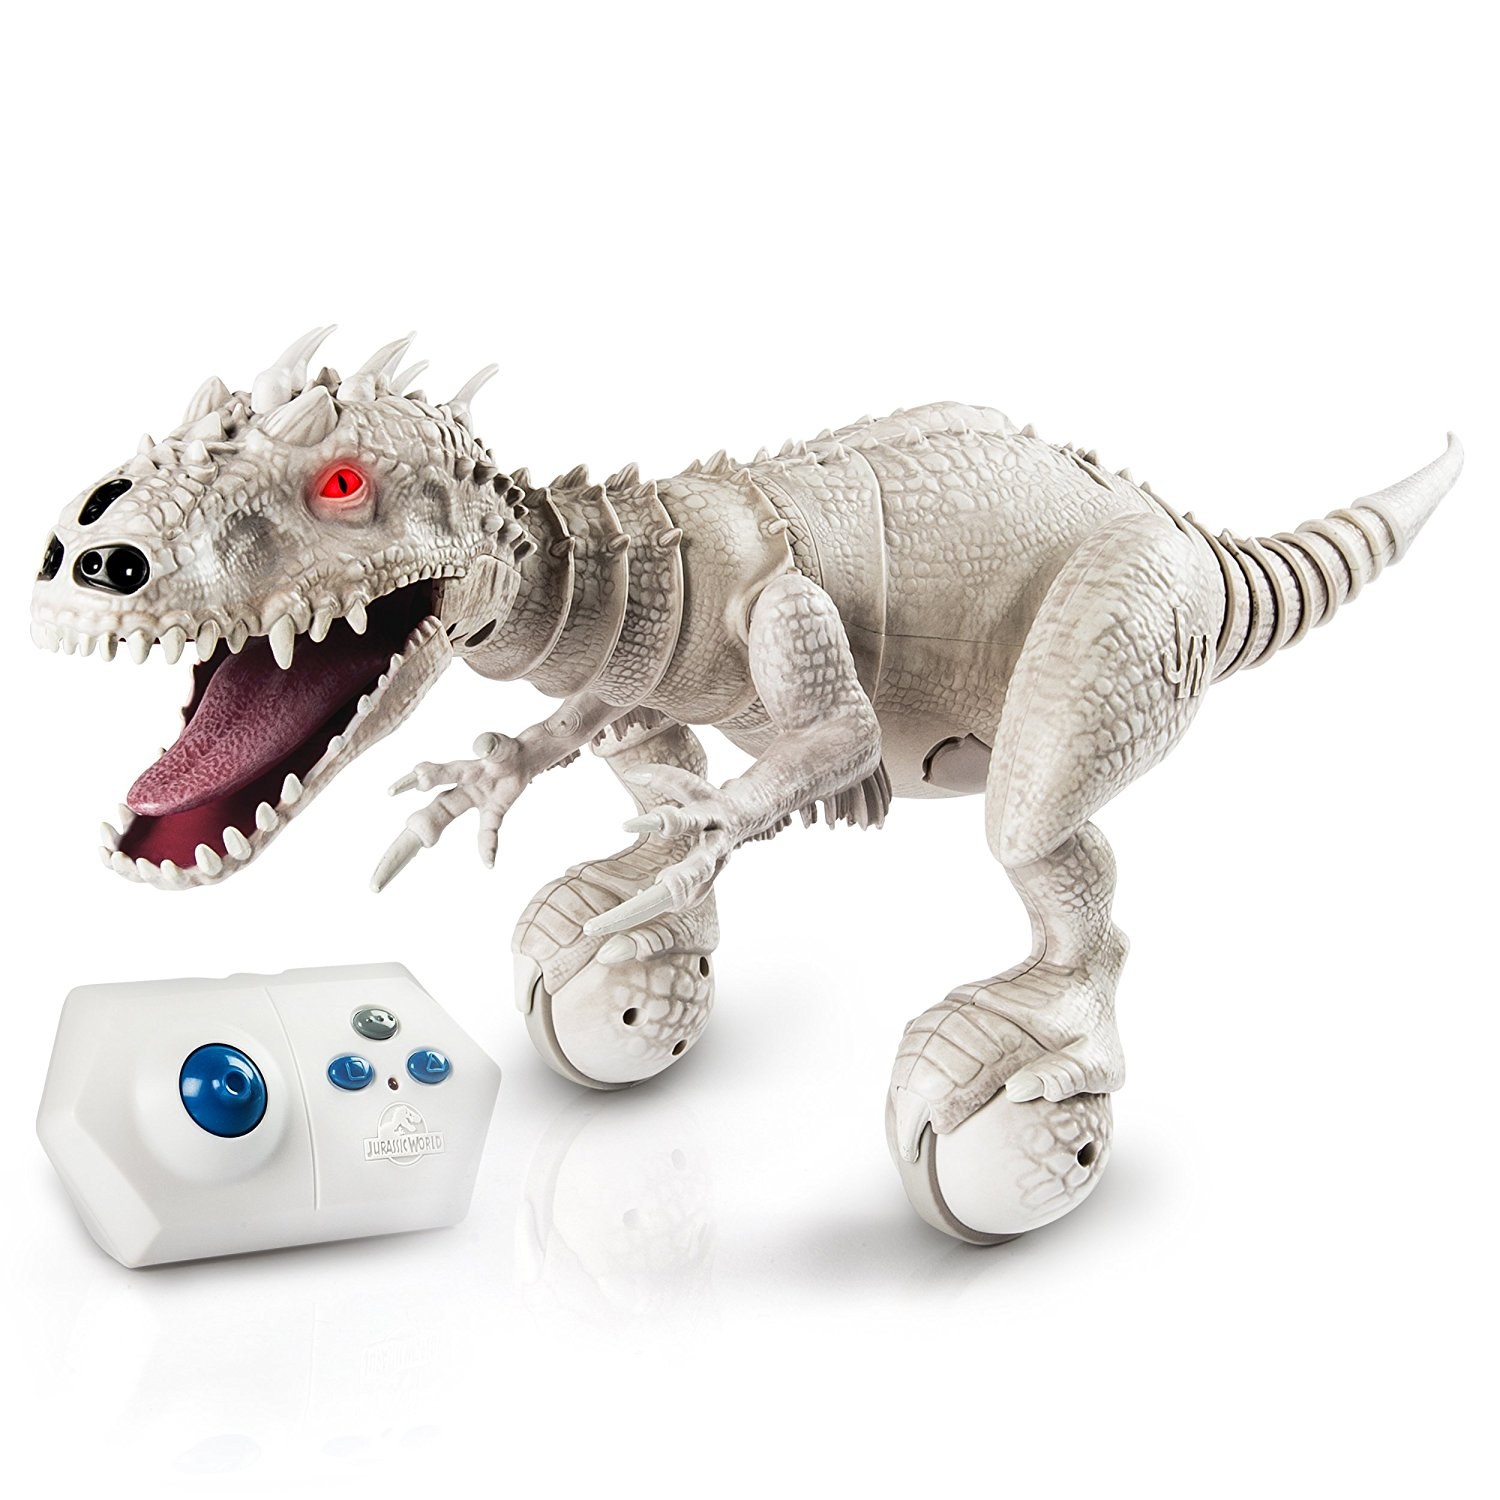 Robot khủng long xám Zoomer Dino, Jurassic world INDOMINUS REX-Collectible Robotic Edition